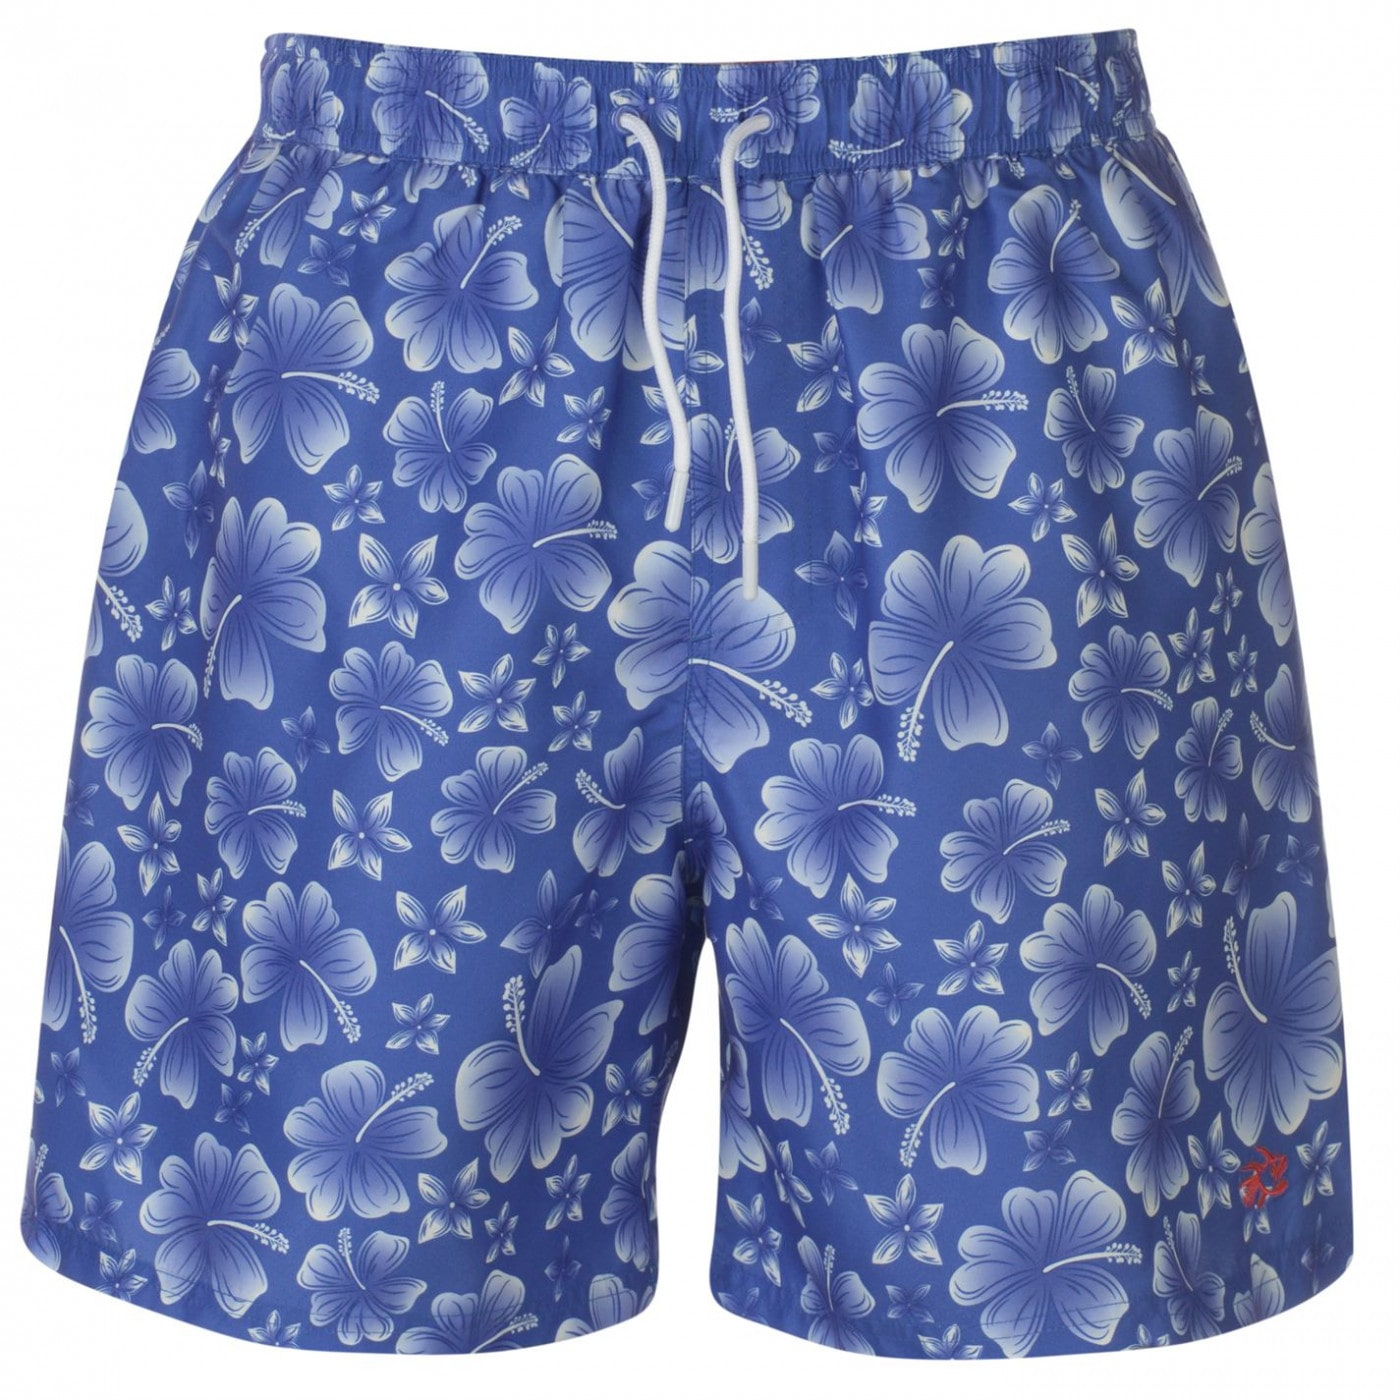 Hot Tuna Printed Shorts Mens